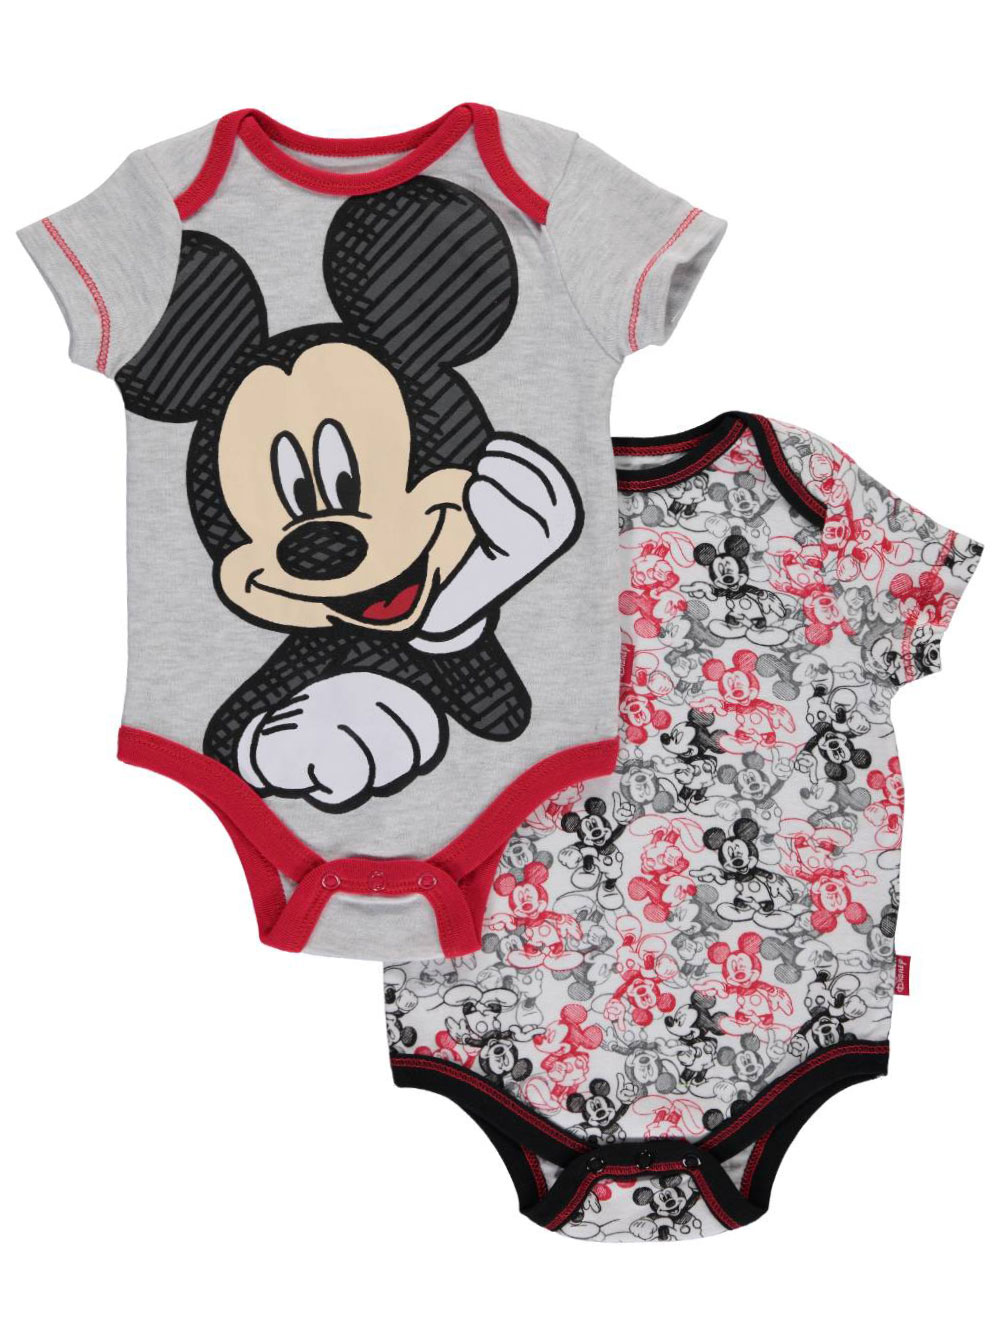 Image of Mickey Mouse Baby Boys Work in Progress 2Pack Bodysuits  heather graymulti 6  9 months